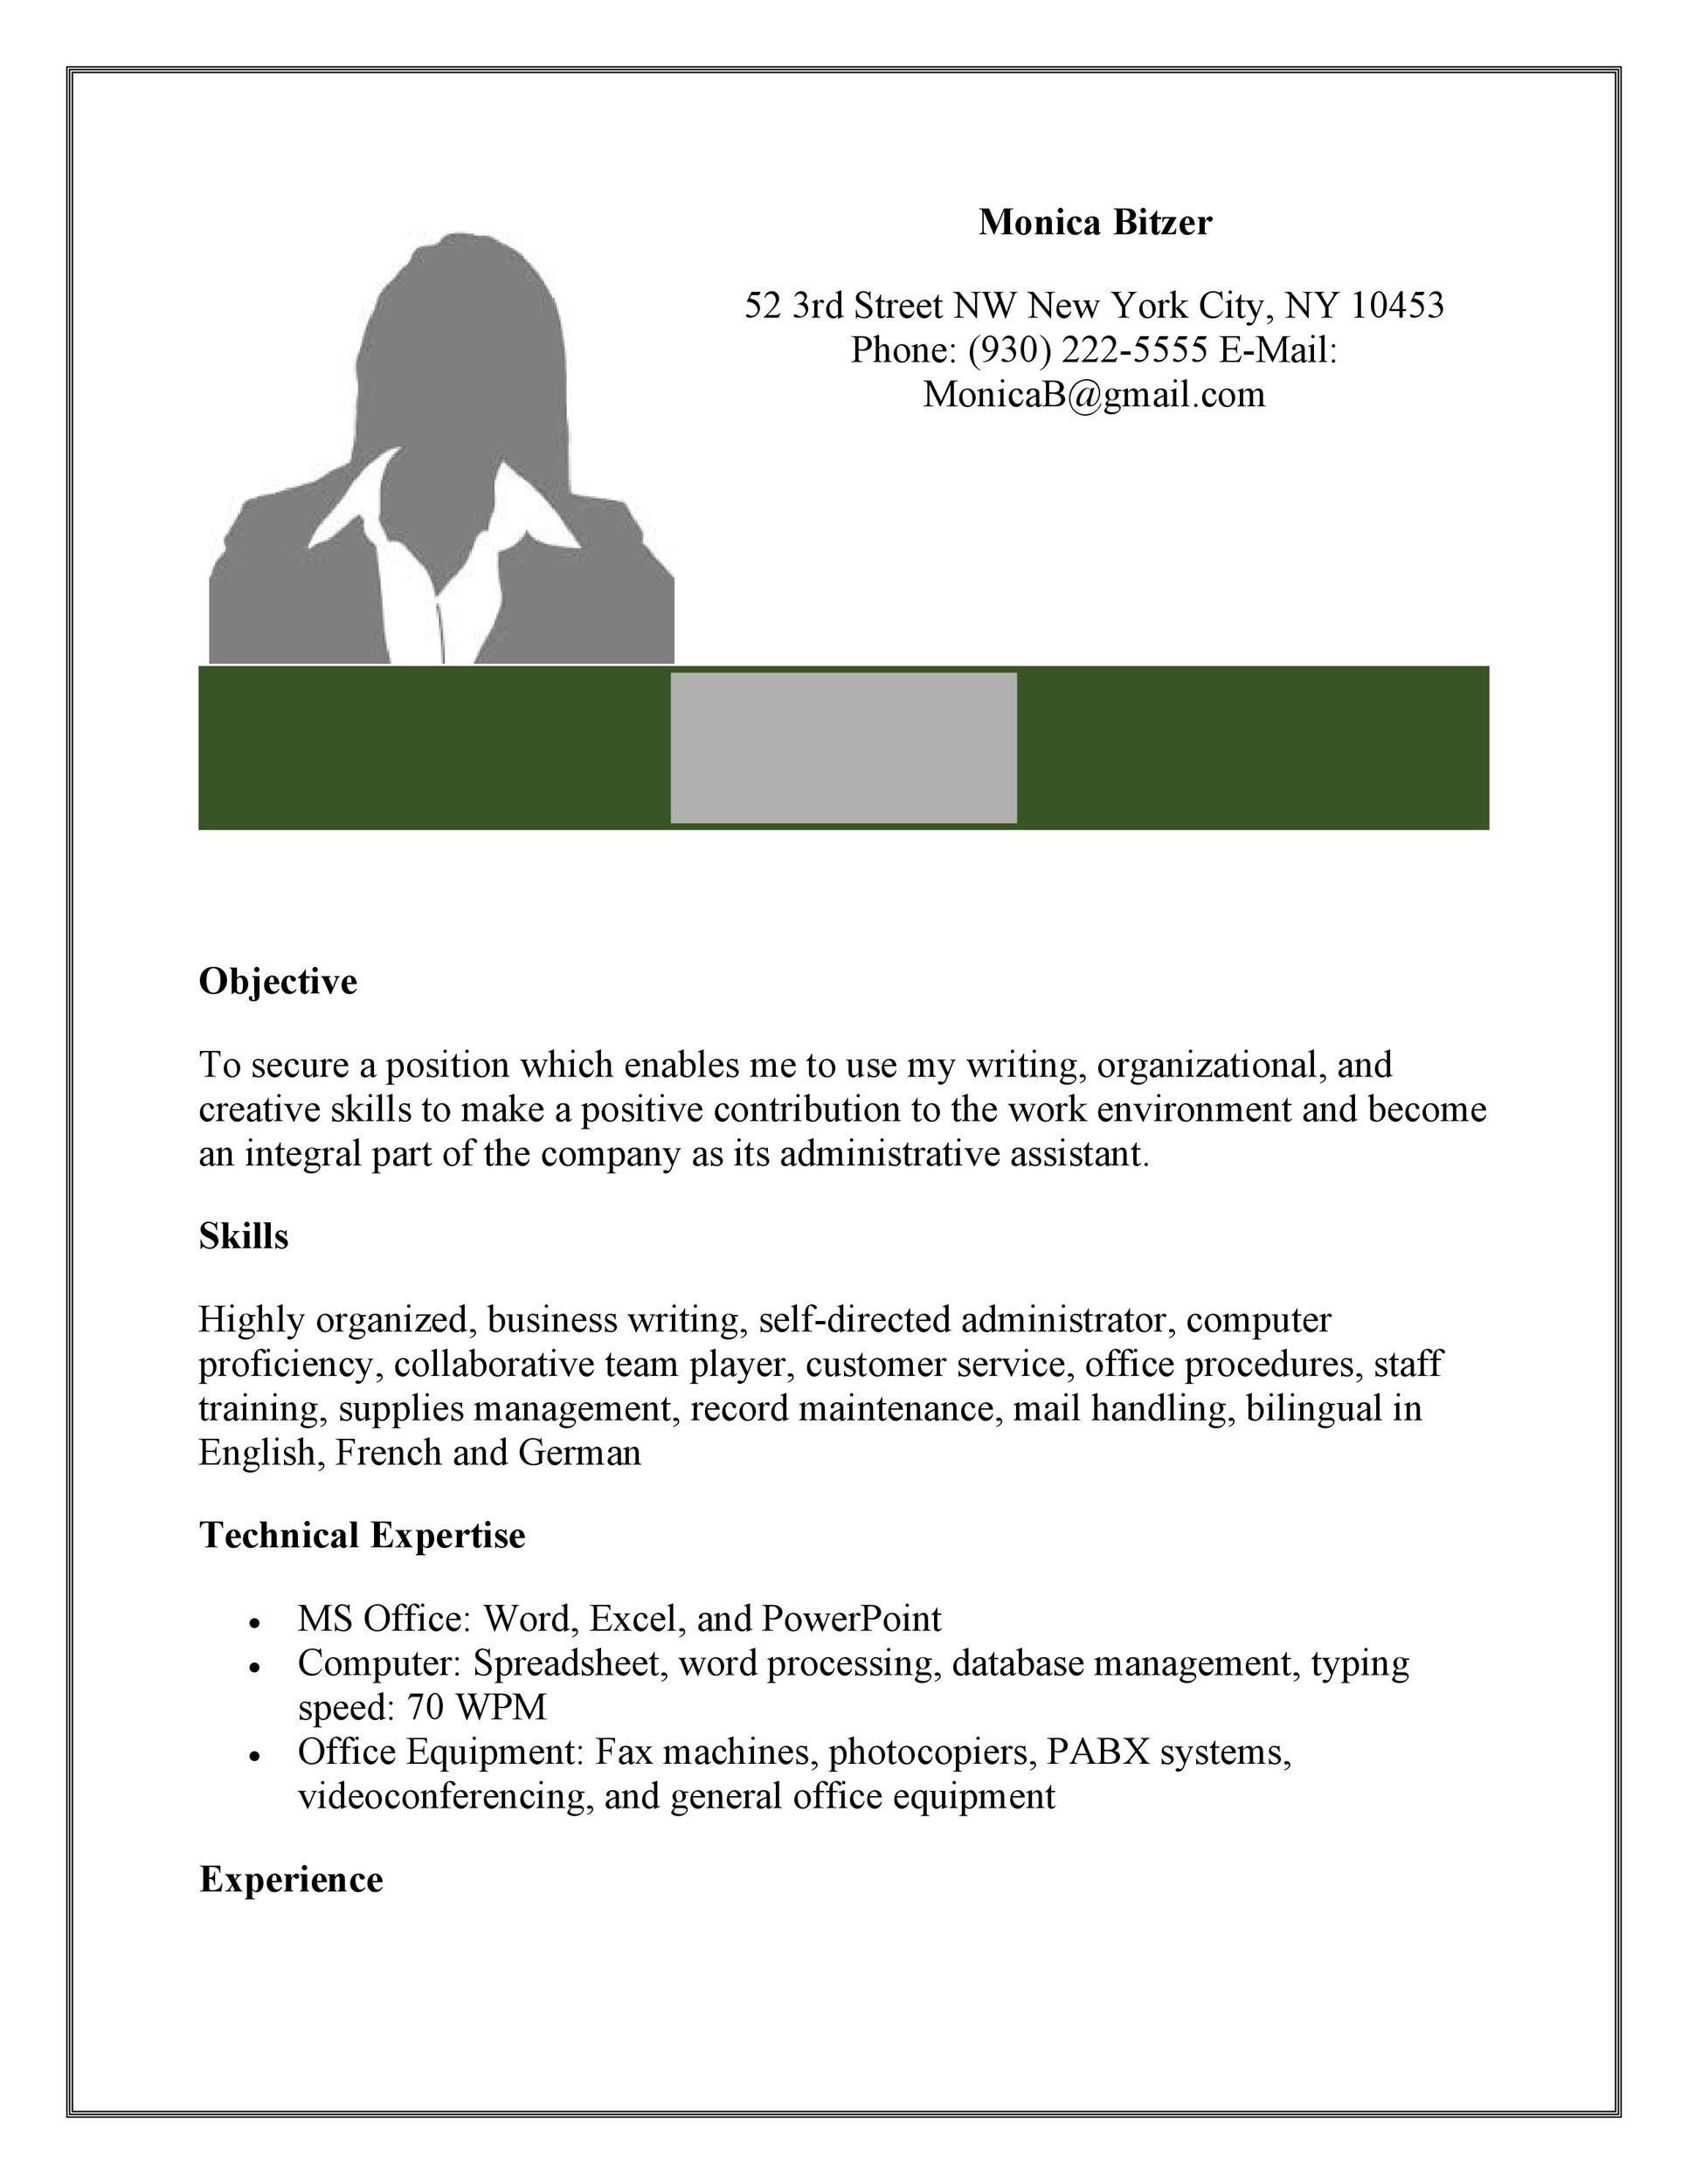 20+ Free Administrative Assistant Resume Samples - Template Lab - administrative assistant resume skills